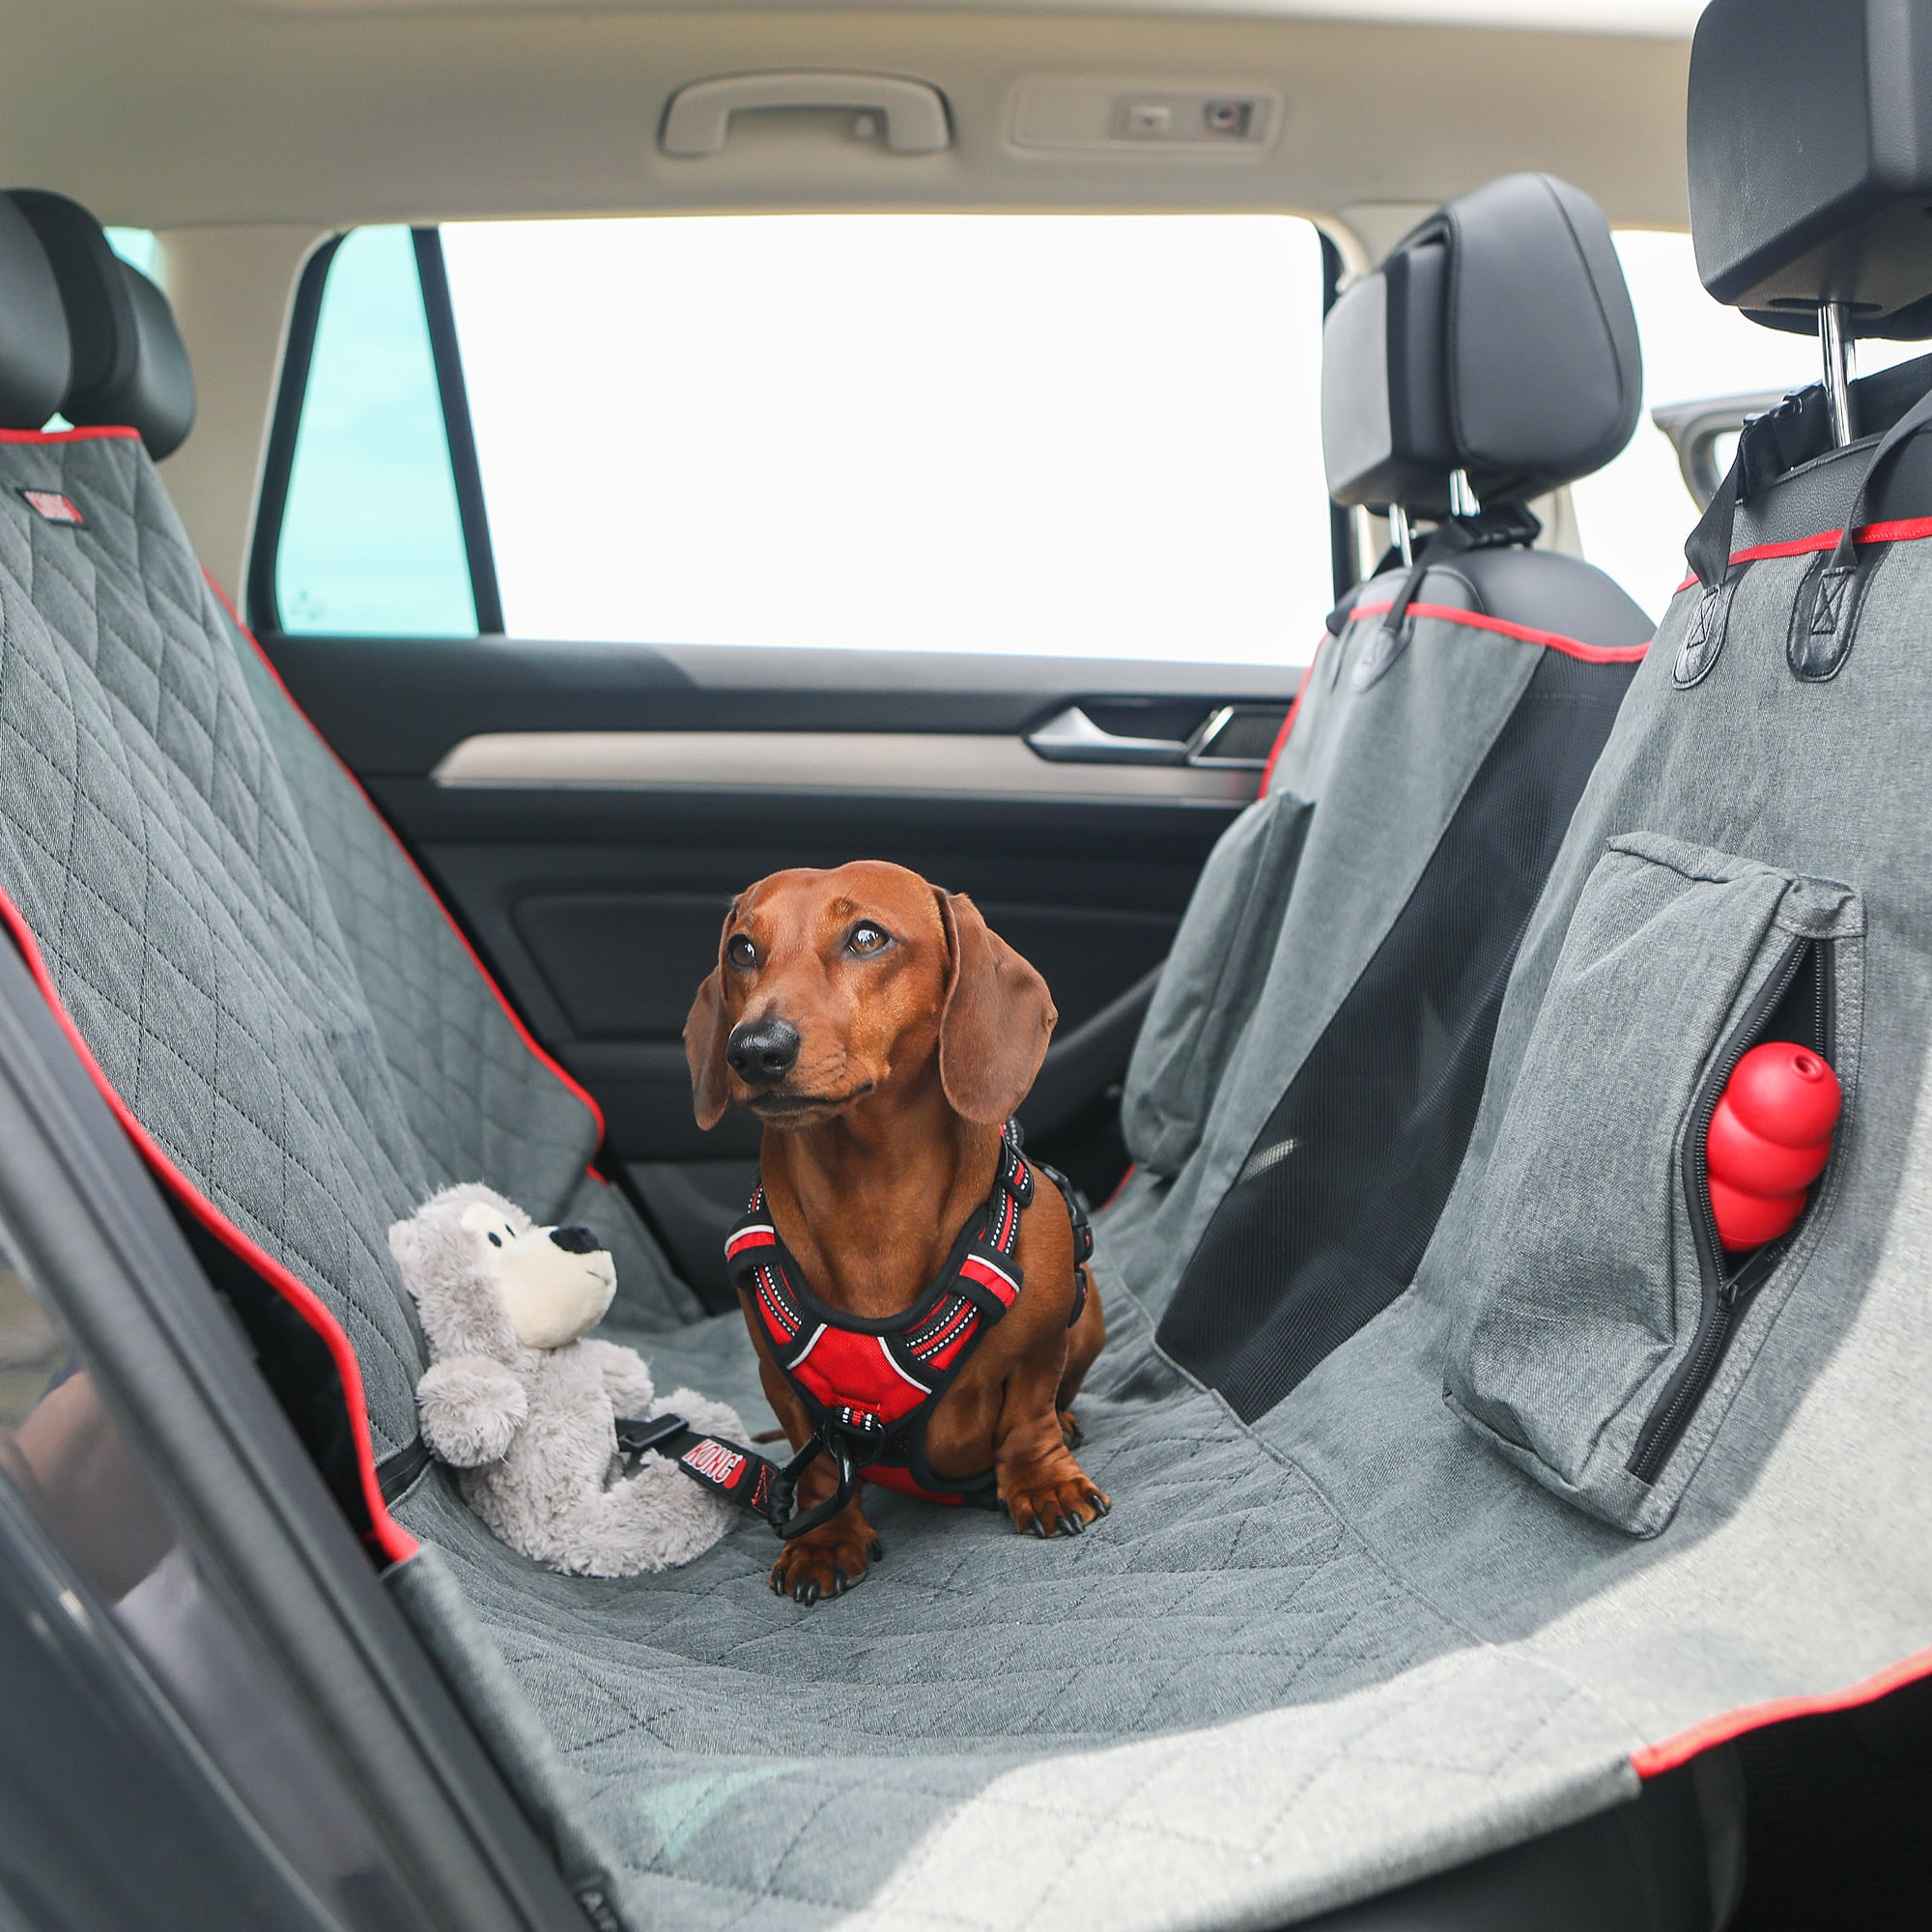 KONG 2-In-1 Car Bench Seat Cover and Hammock for Dogs, 4.3 LBS